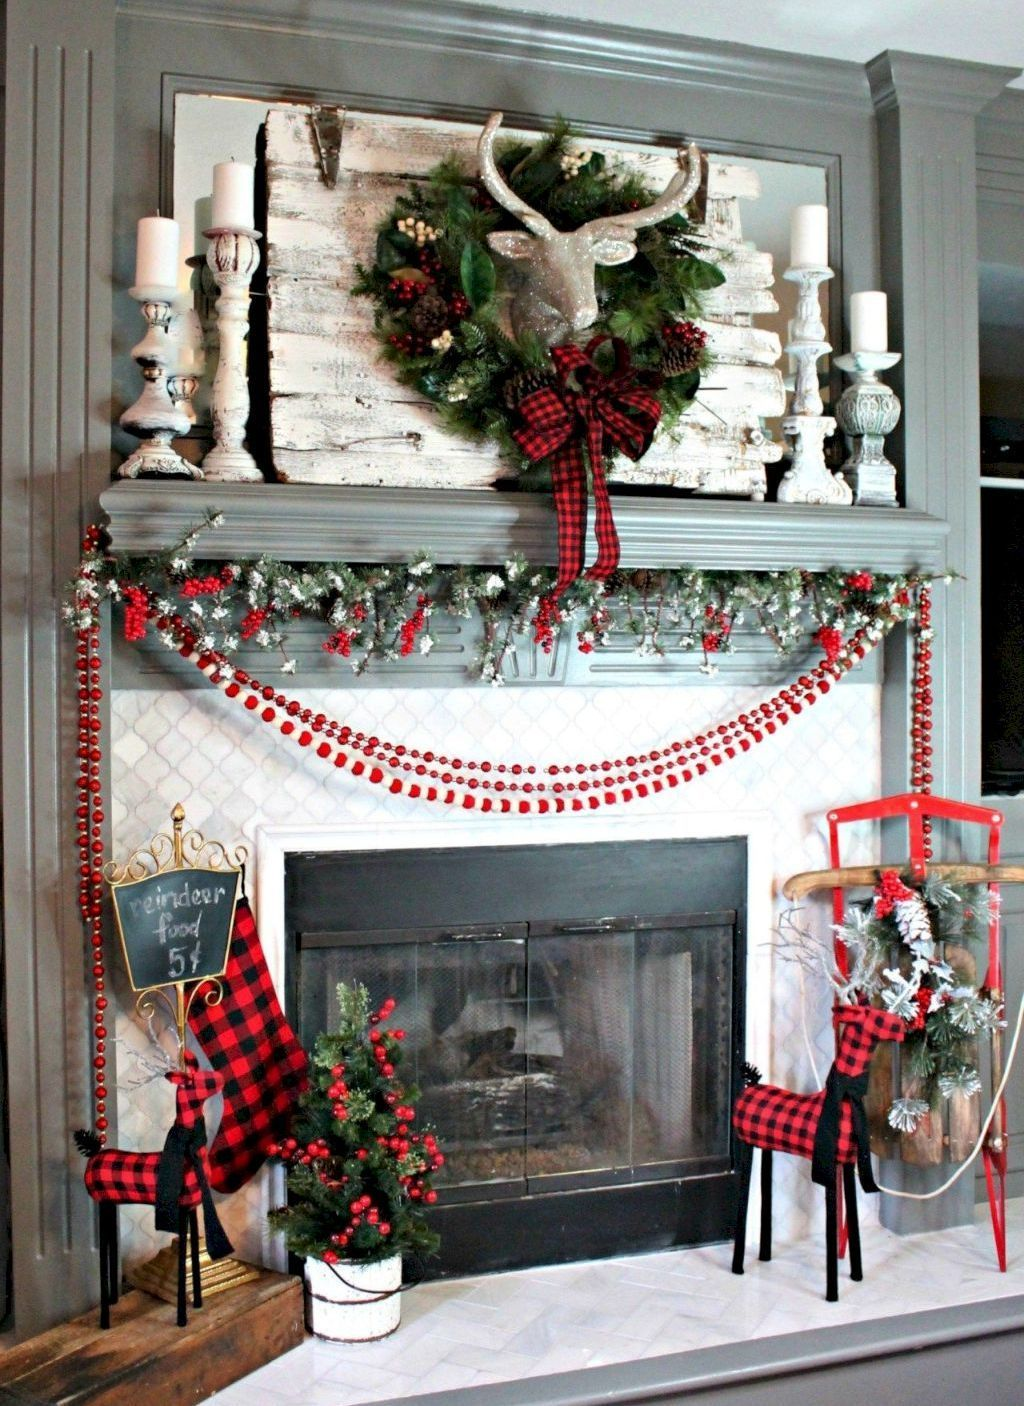 Affordable Decorating Ideas For Living Rooms: 30 Affordable Farmhouse Christmas Decorating Ideas